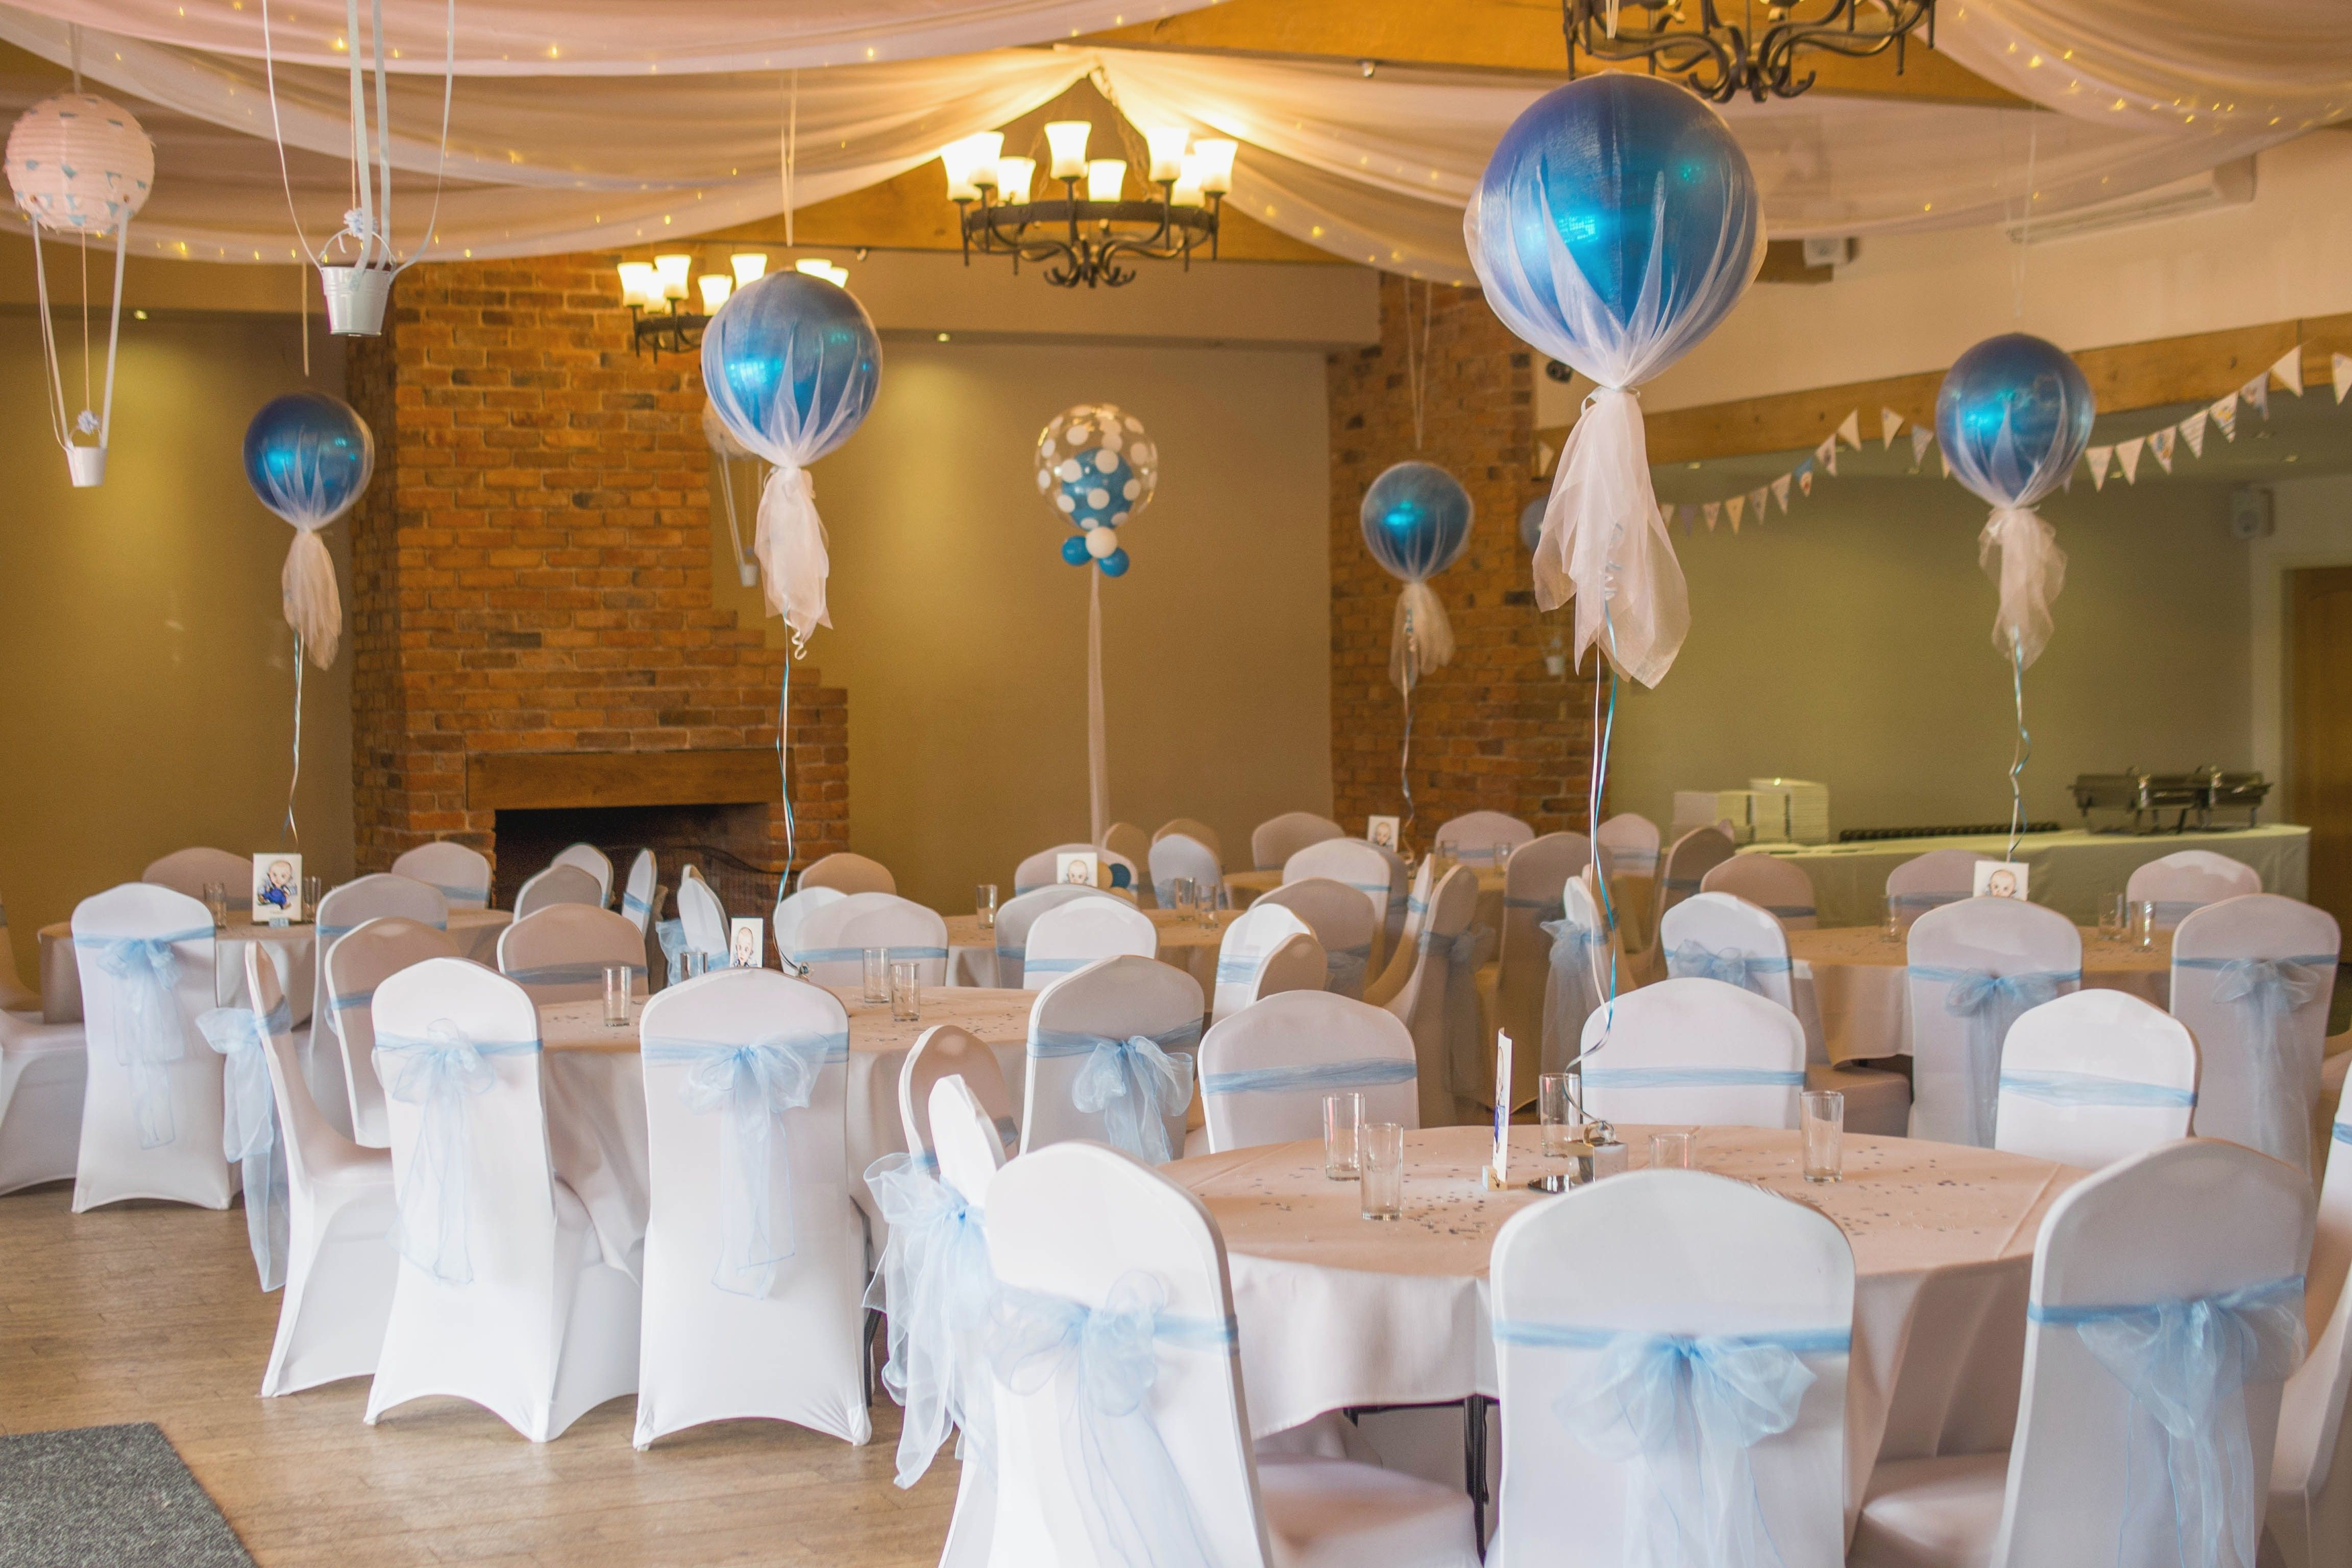 Plan special birthday party with perfect theme